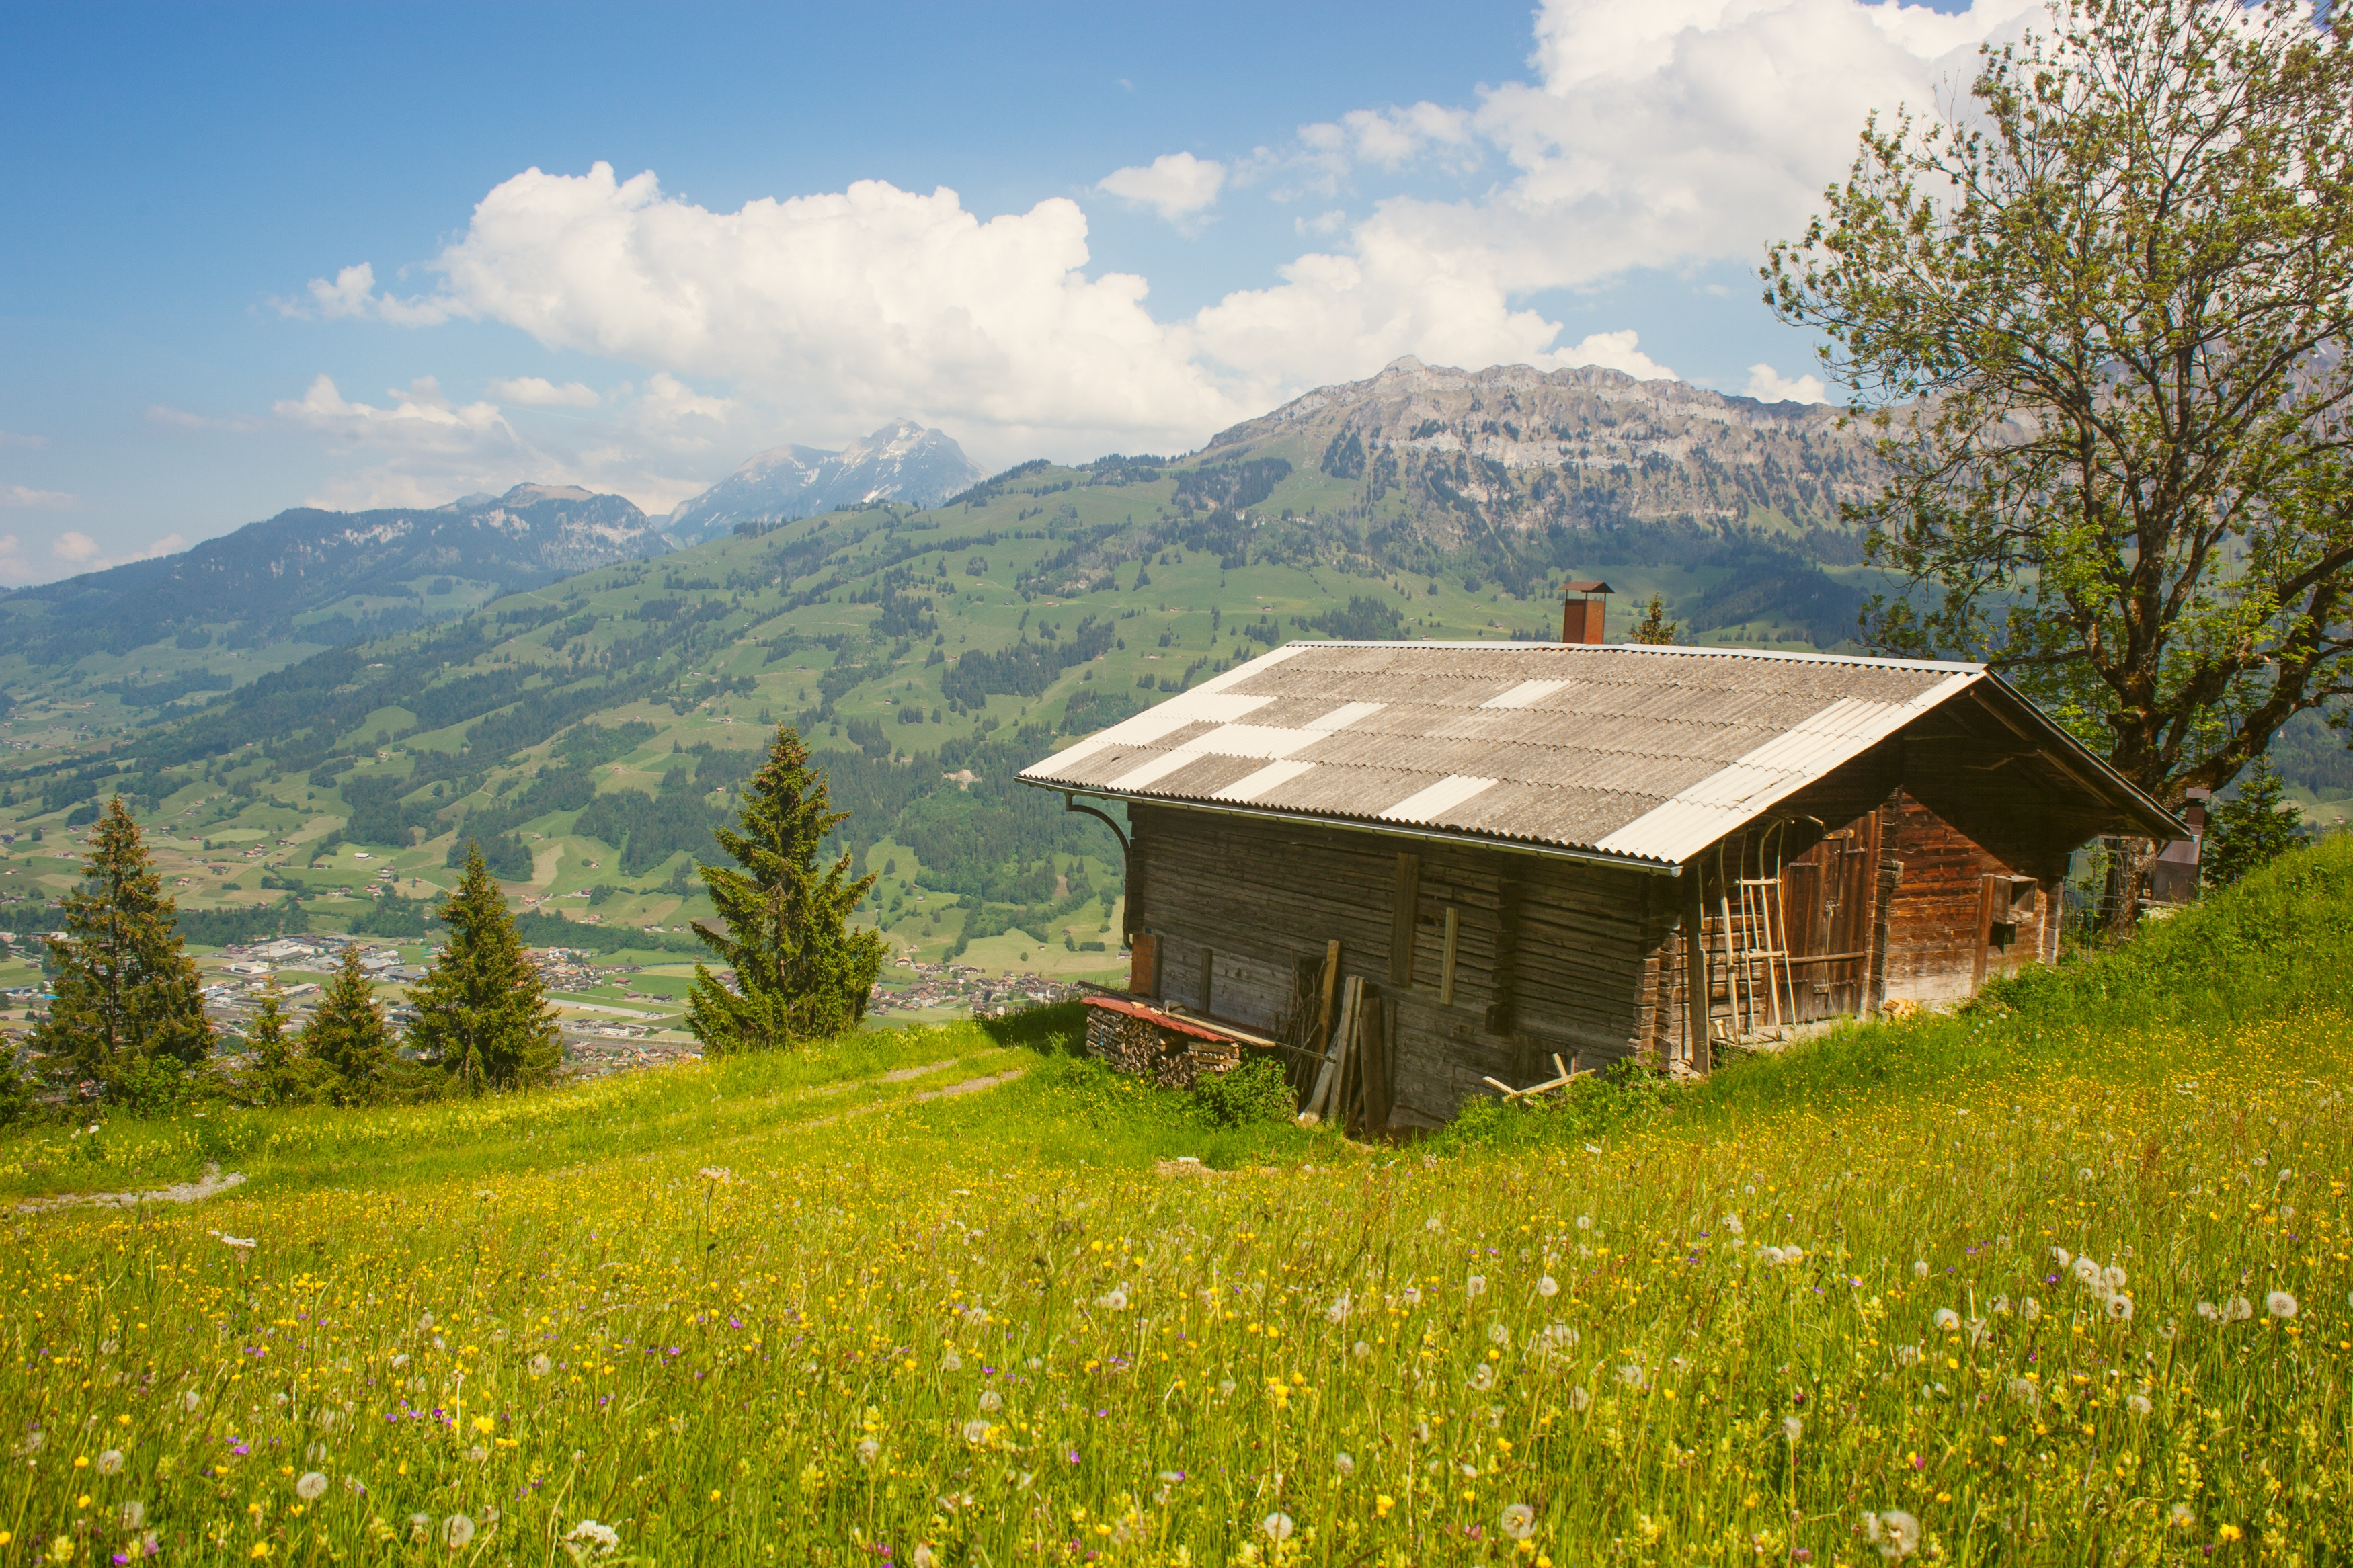 How to Find the Best Location for your Garden Shed